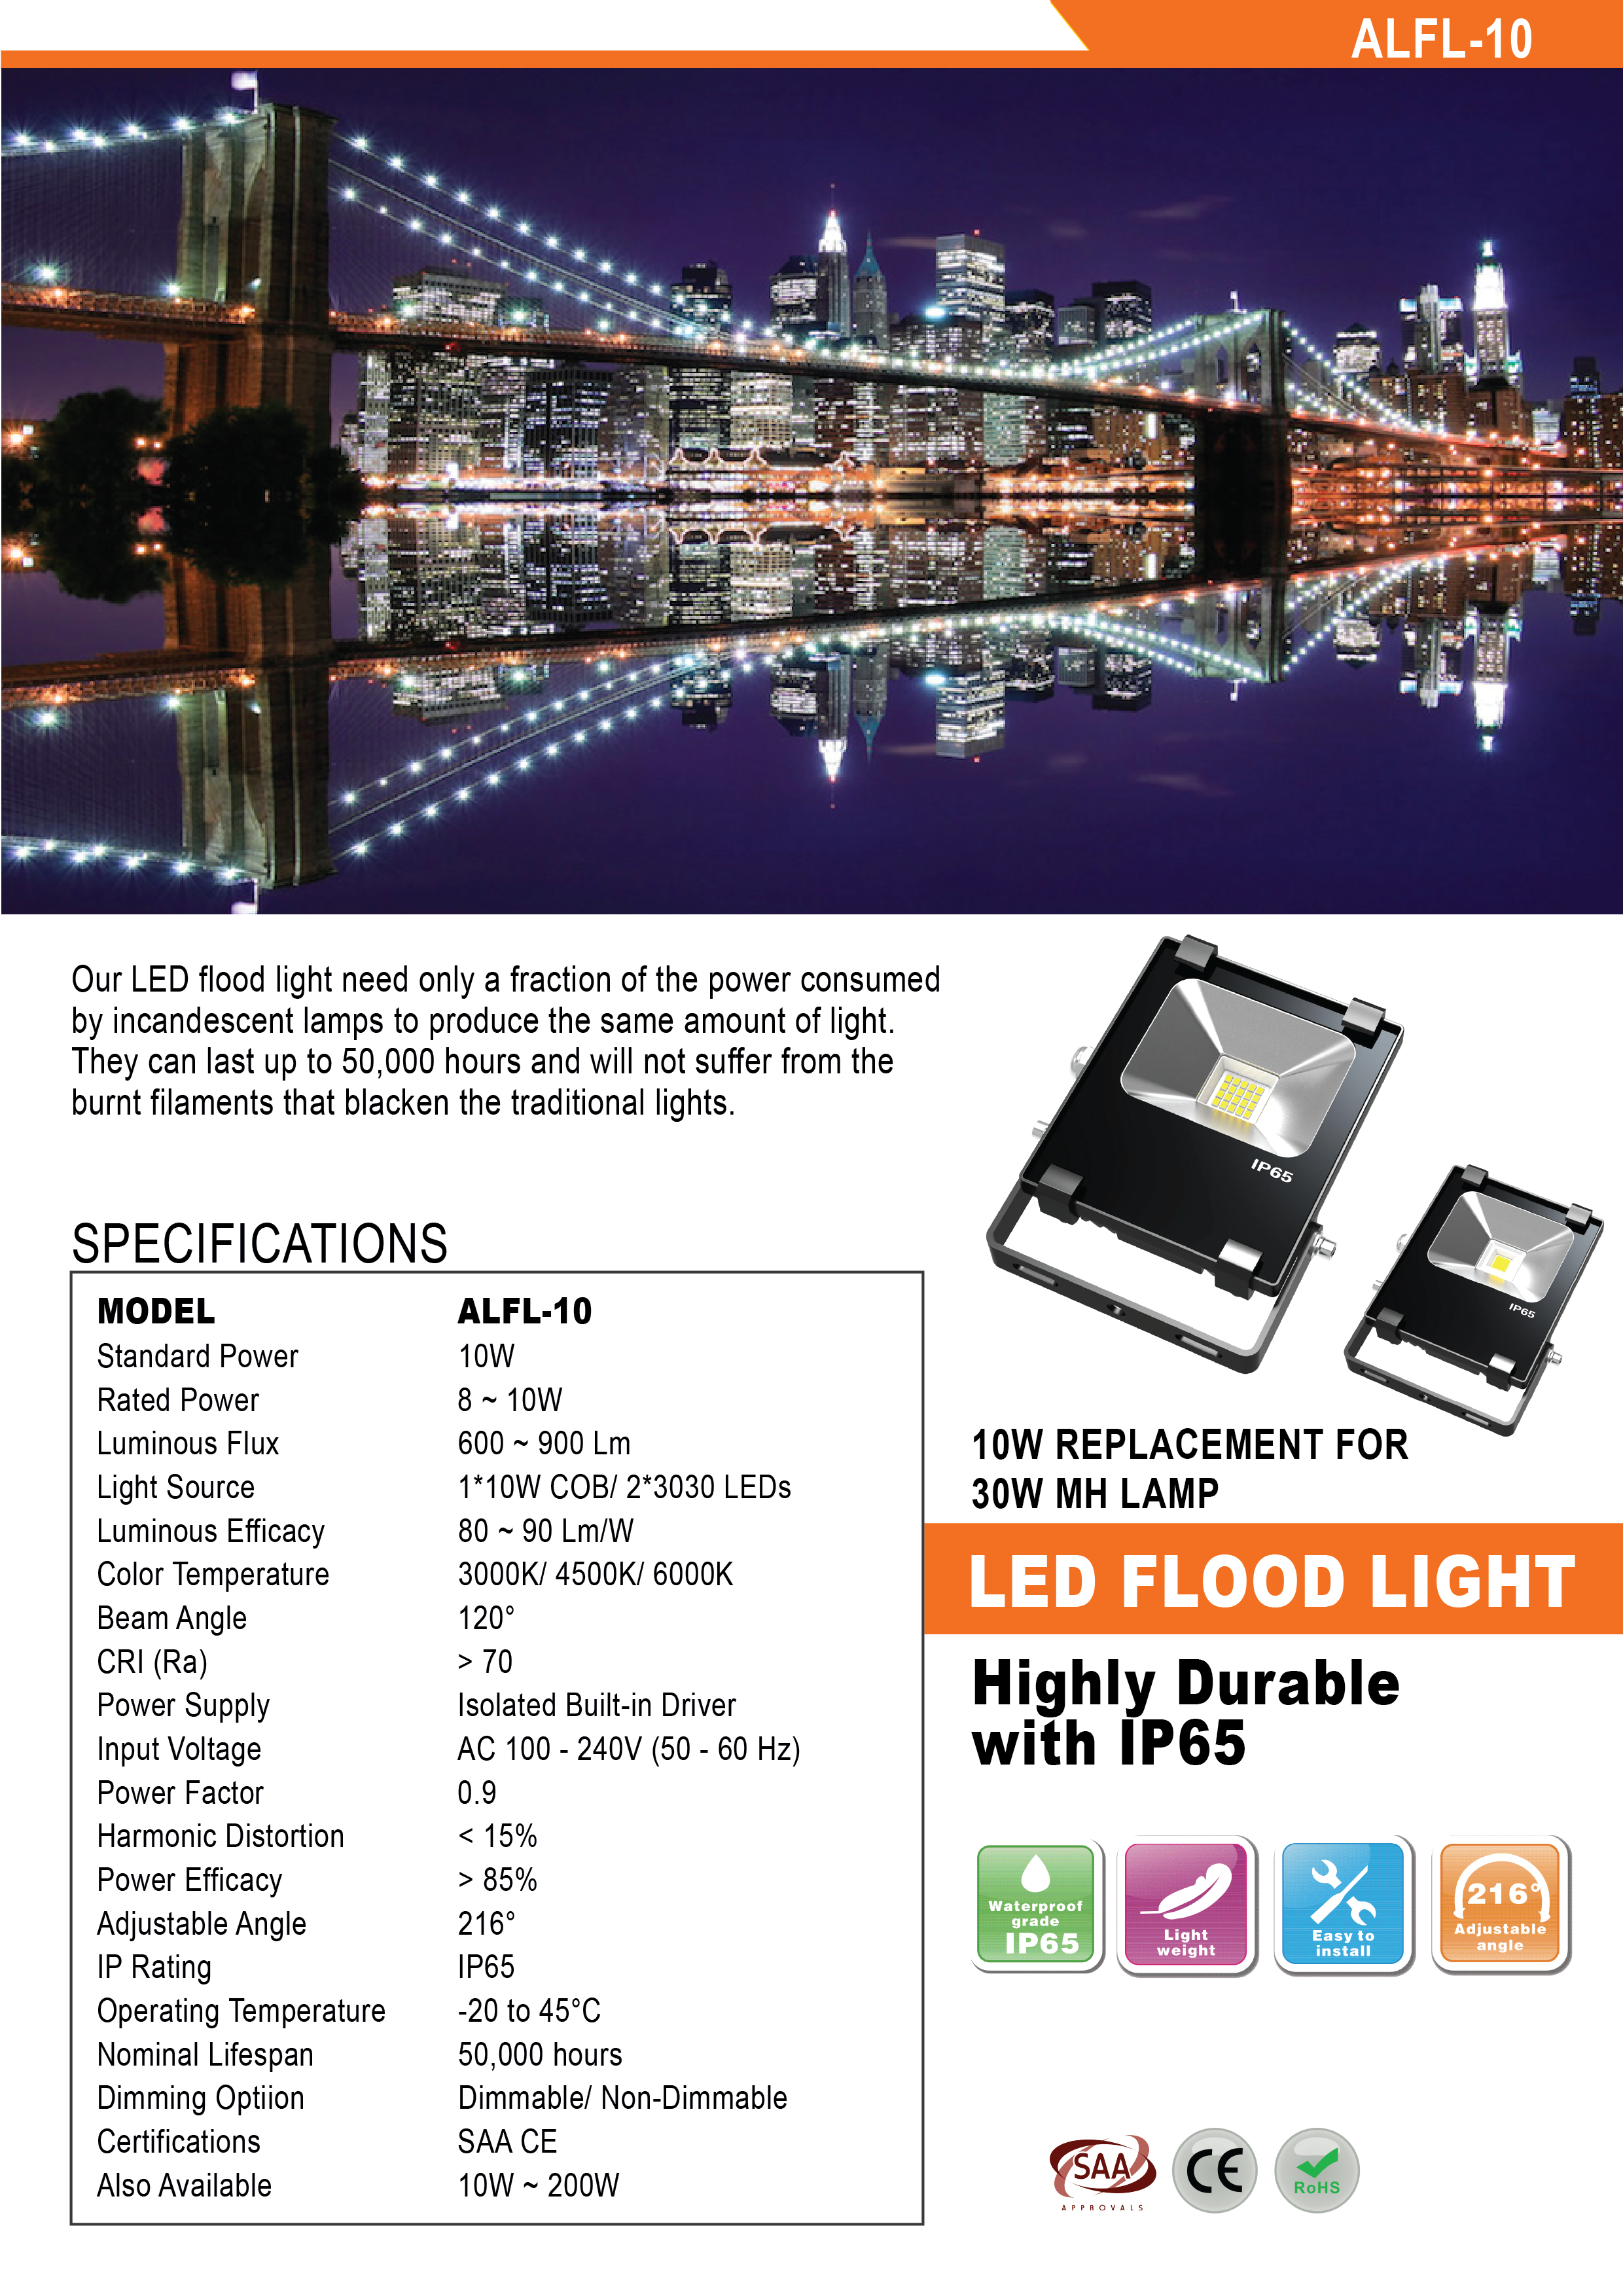 Led Floodlight 10w Flood Light Wiring Diagram Specifications Dimensions Correlated Cct Related Product